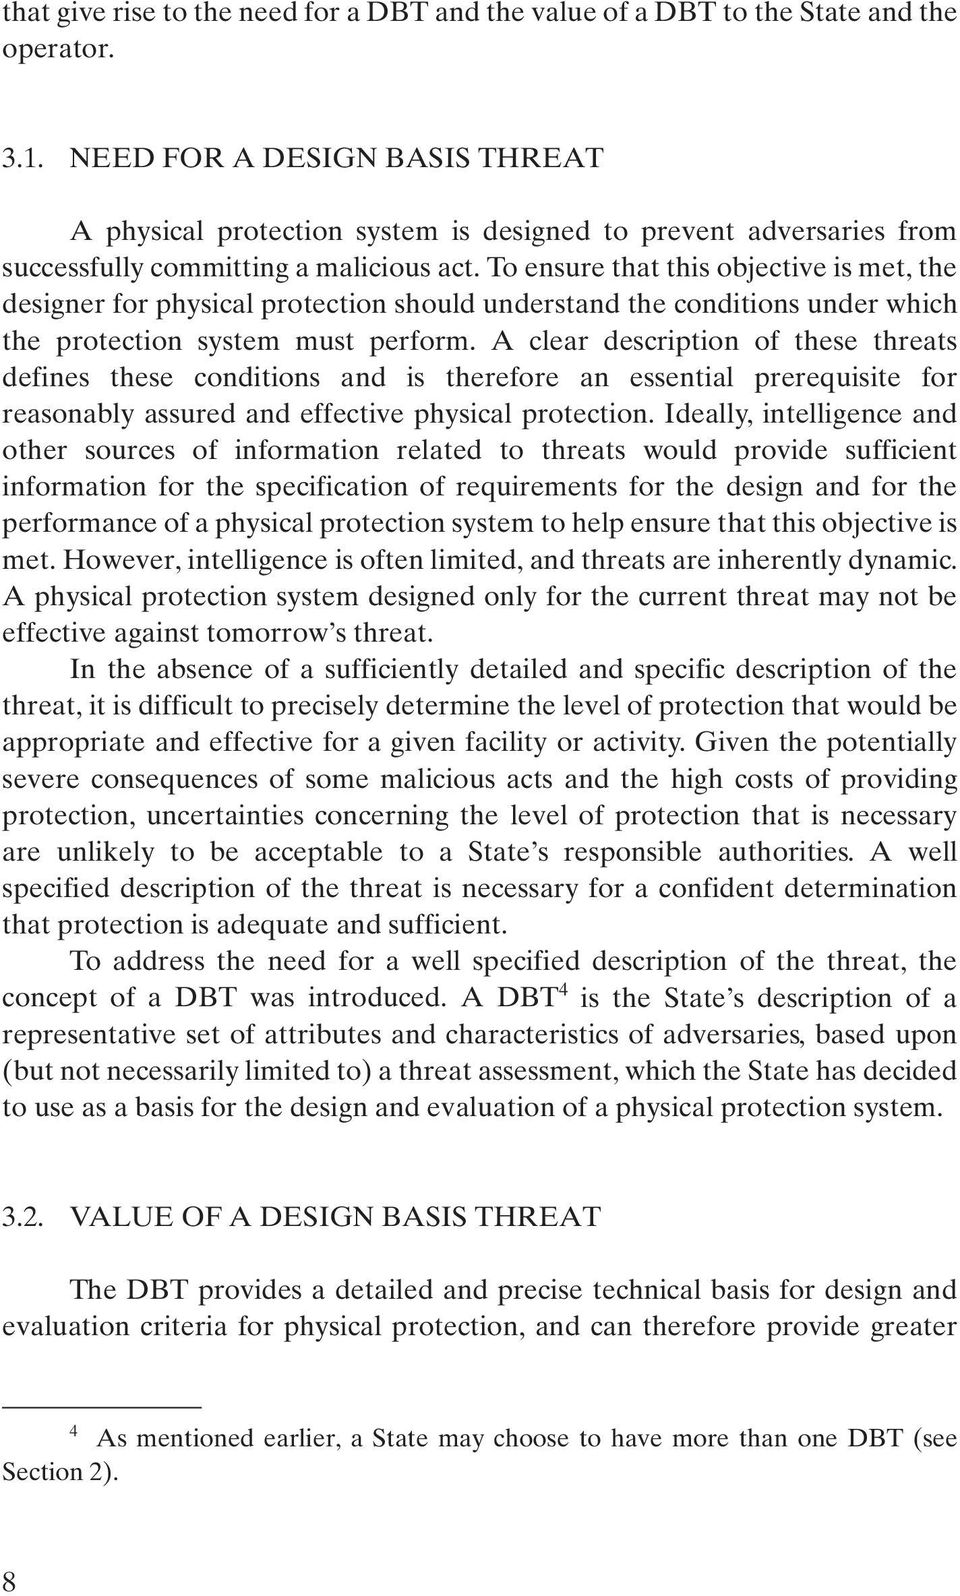 To ensure that this objective is met, the designer for physical protection should understand the conditions under which the protection system must perform.